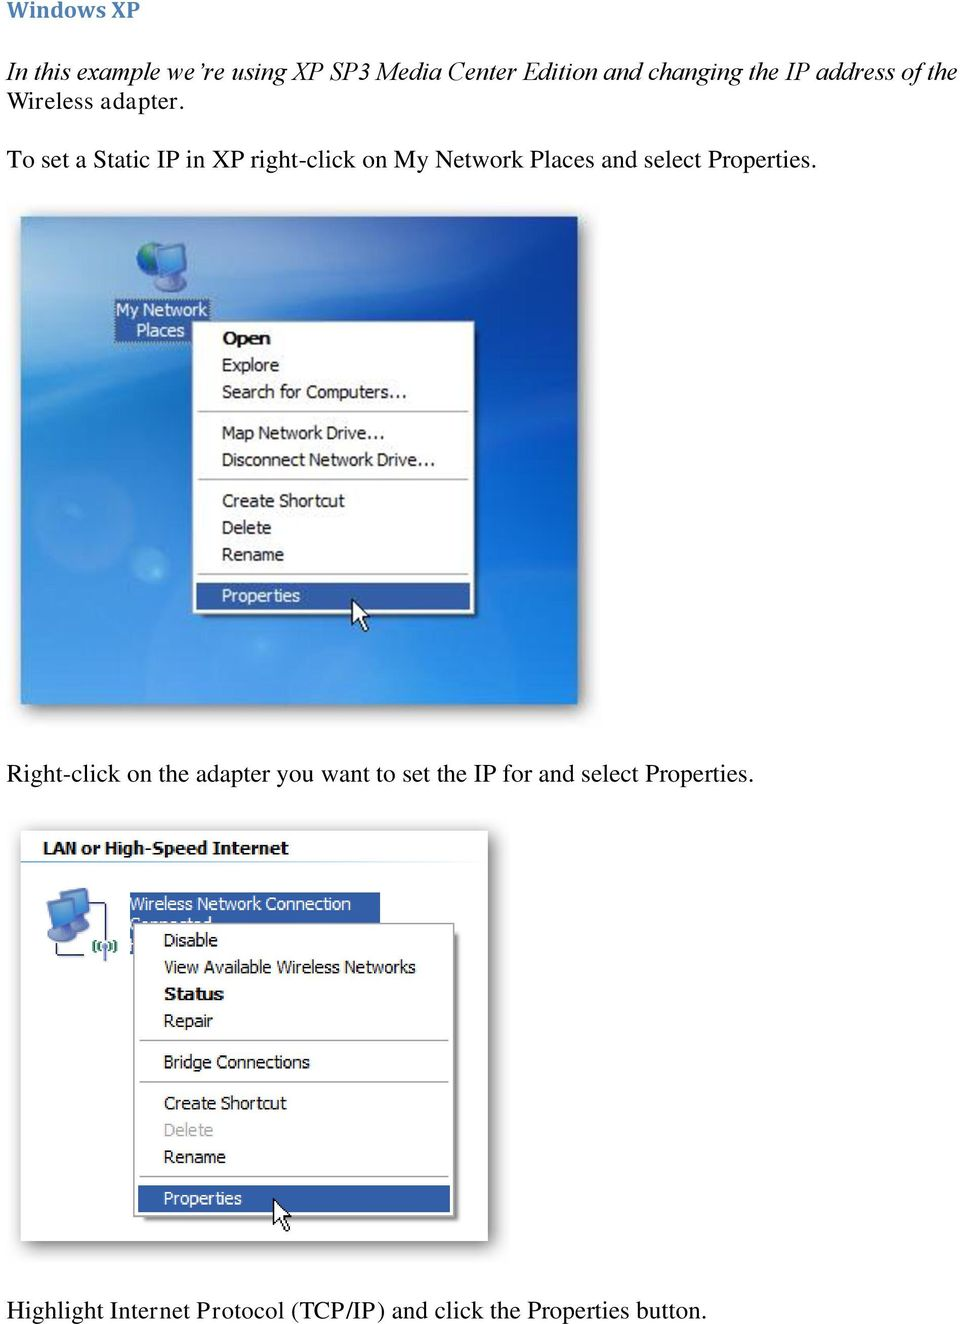 To set a Static IP in XP right-click on My Network Places and select Properties.